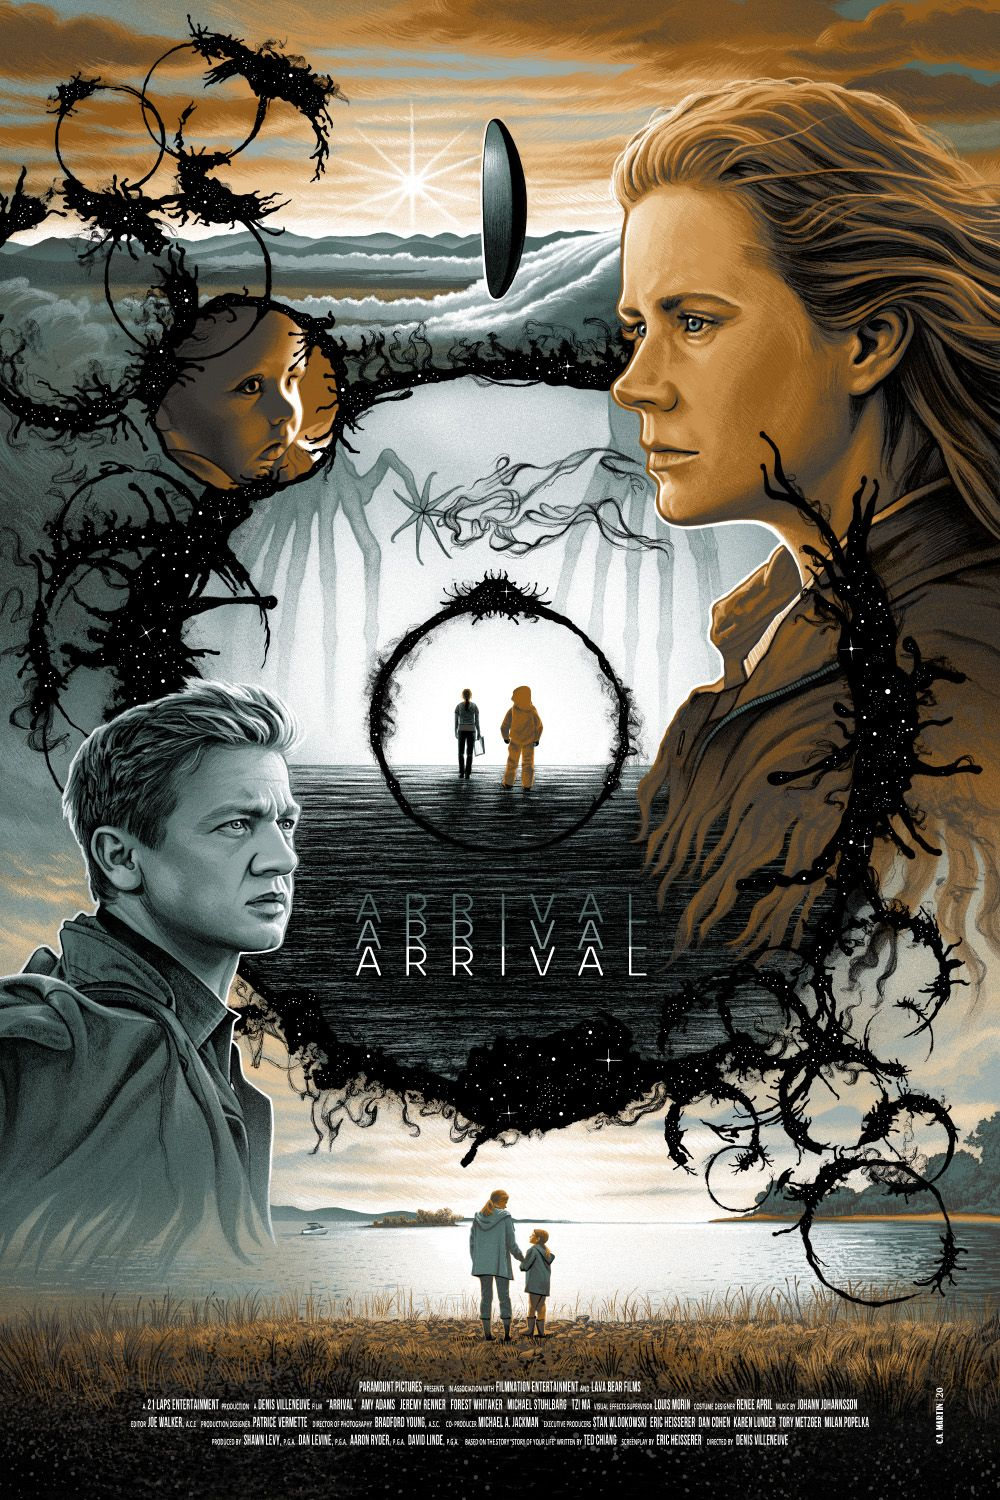 Arrival movie poster screen print by C.A. Martin